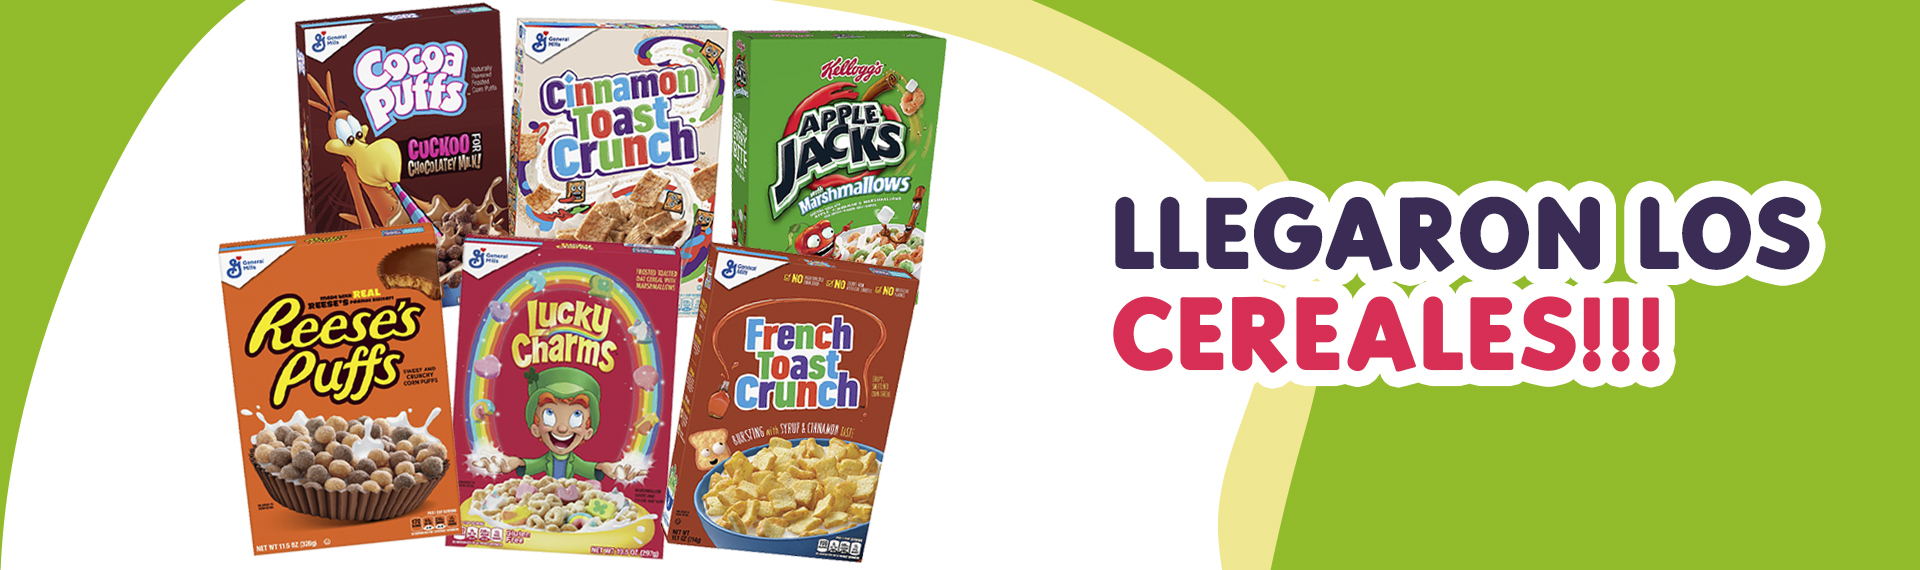 banner cereal2